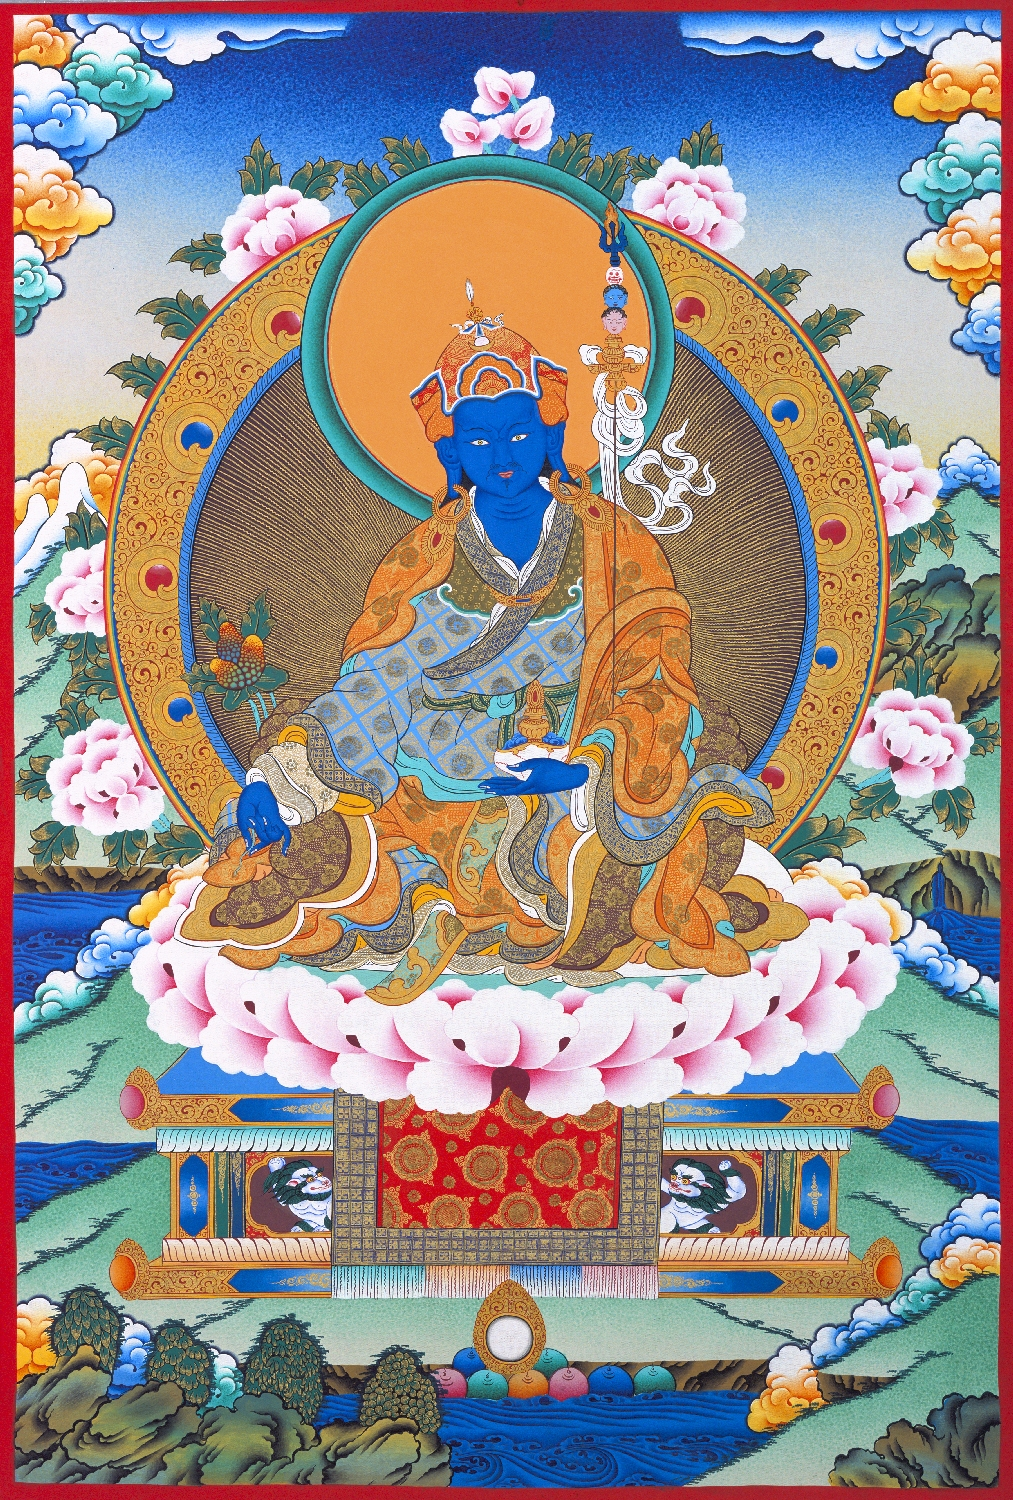 Padmasambhava or Guru Rinpoche was responsible for bringing Vajrayana Buddhism to Tibet and the whole region in the                                                     800's AD